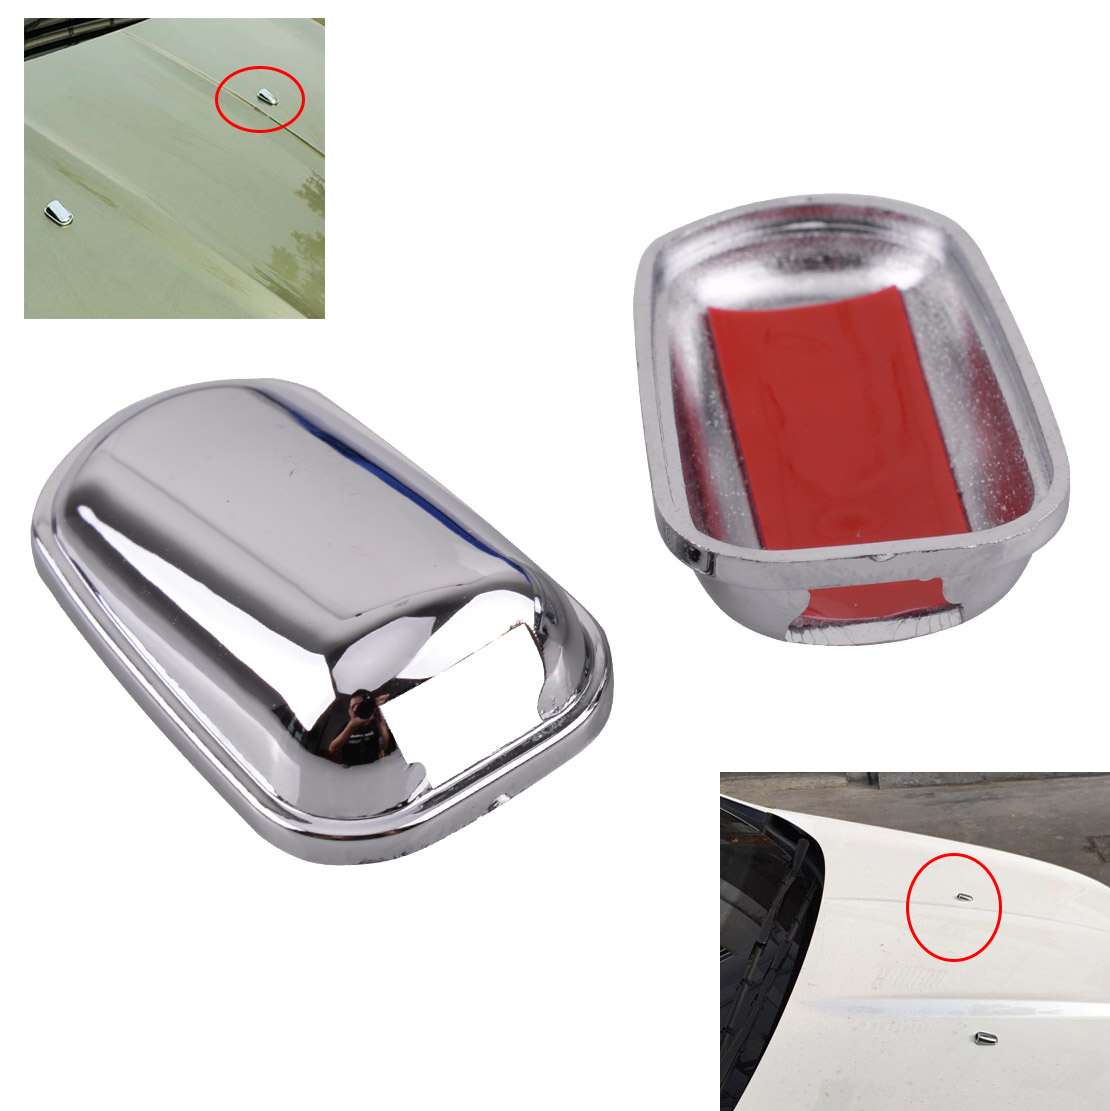 CITALL Car styling 2pcs ABS Chrome Windscreen Washer Cover Spray Nozzle Trim Fit for Ford Kuga Escape 2013 2014 2015 2016 image